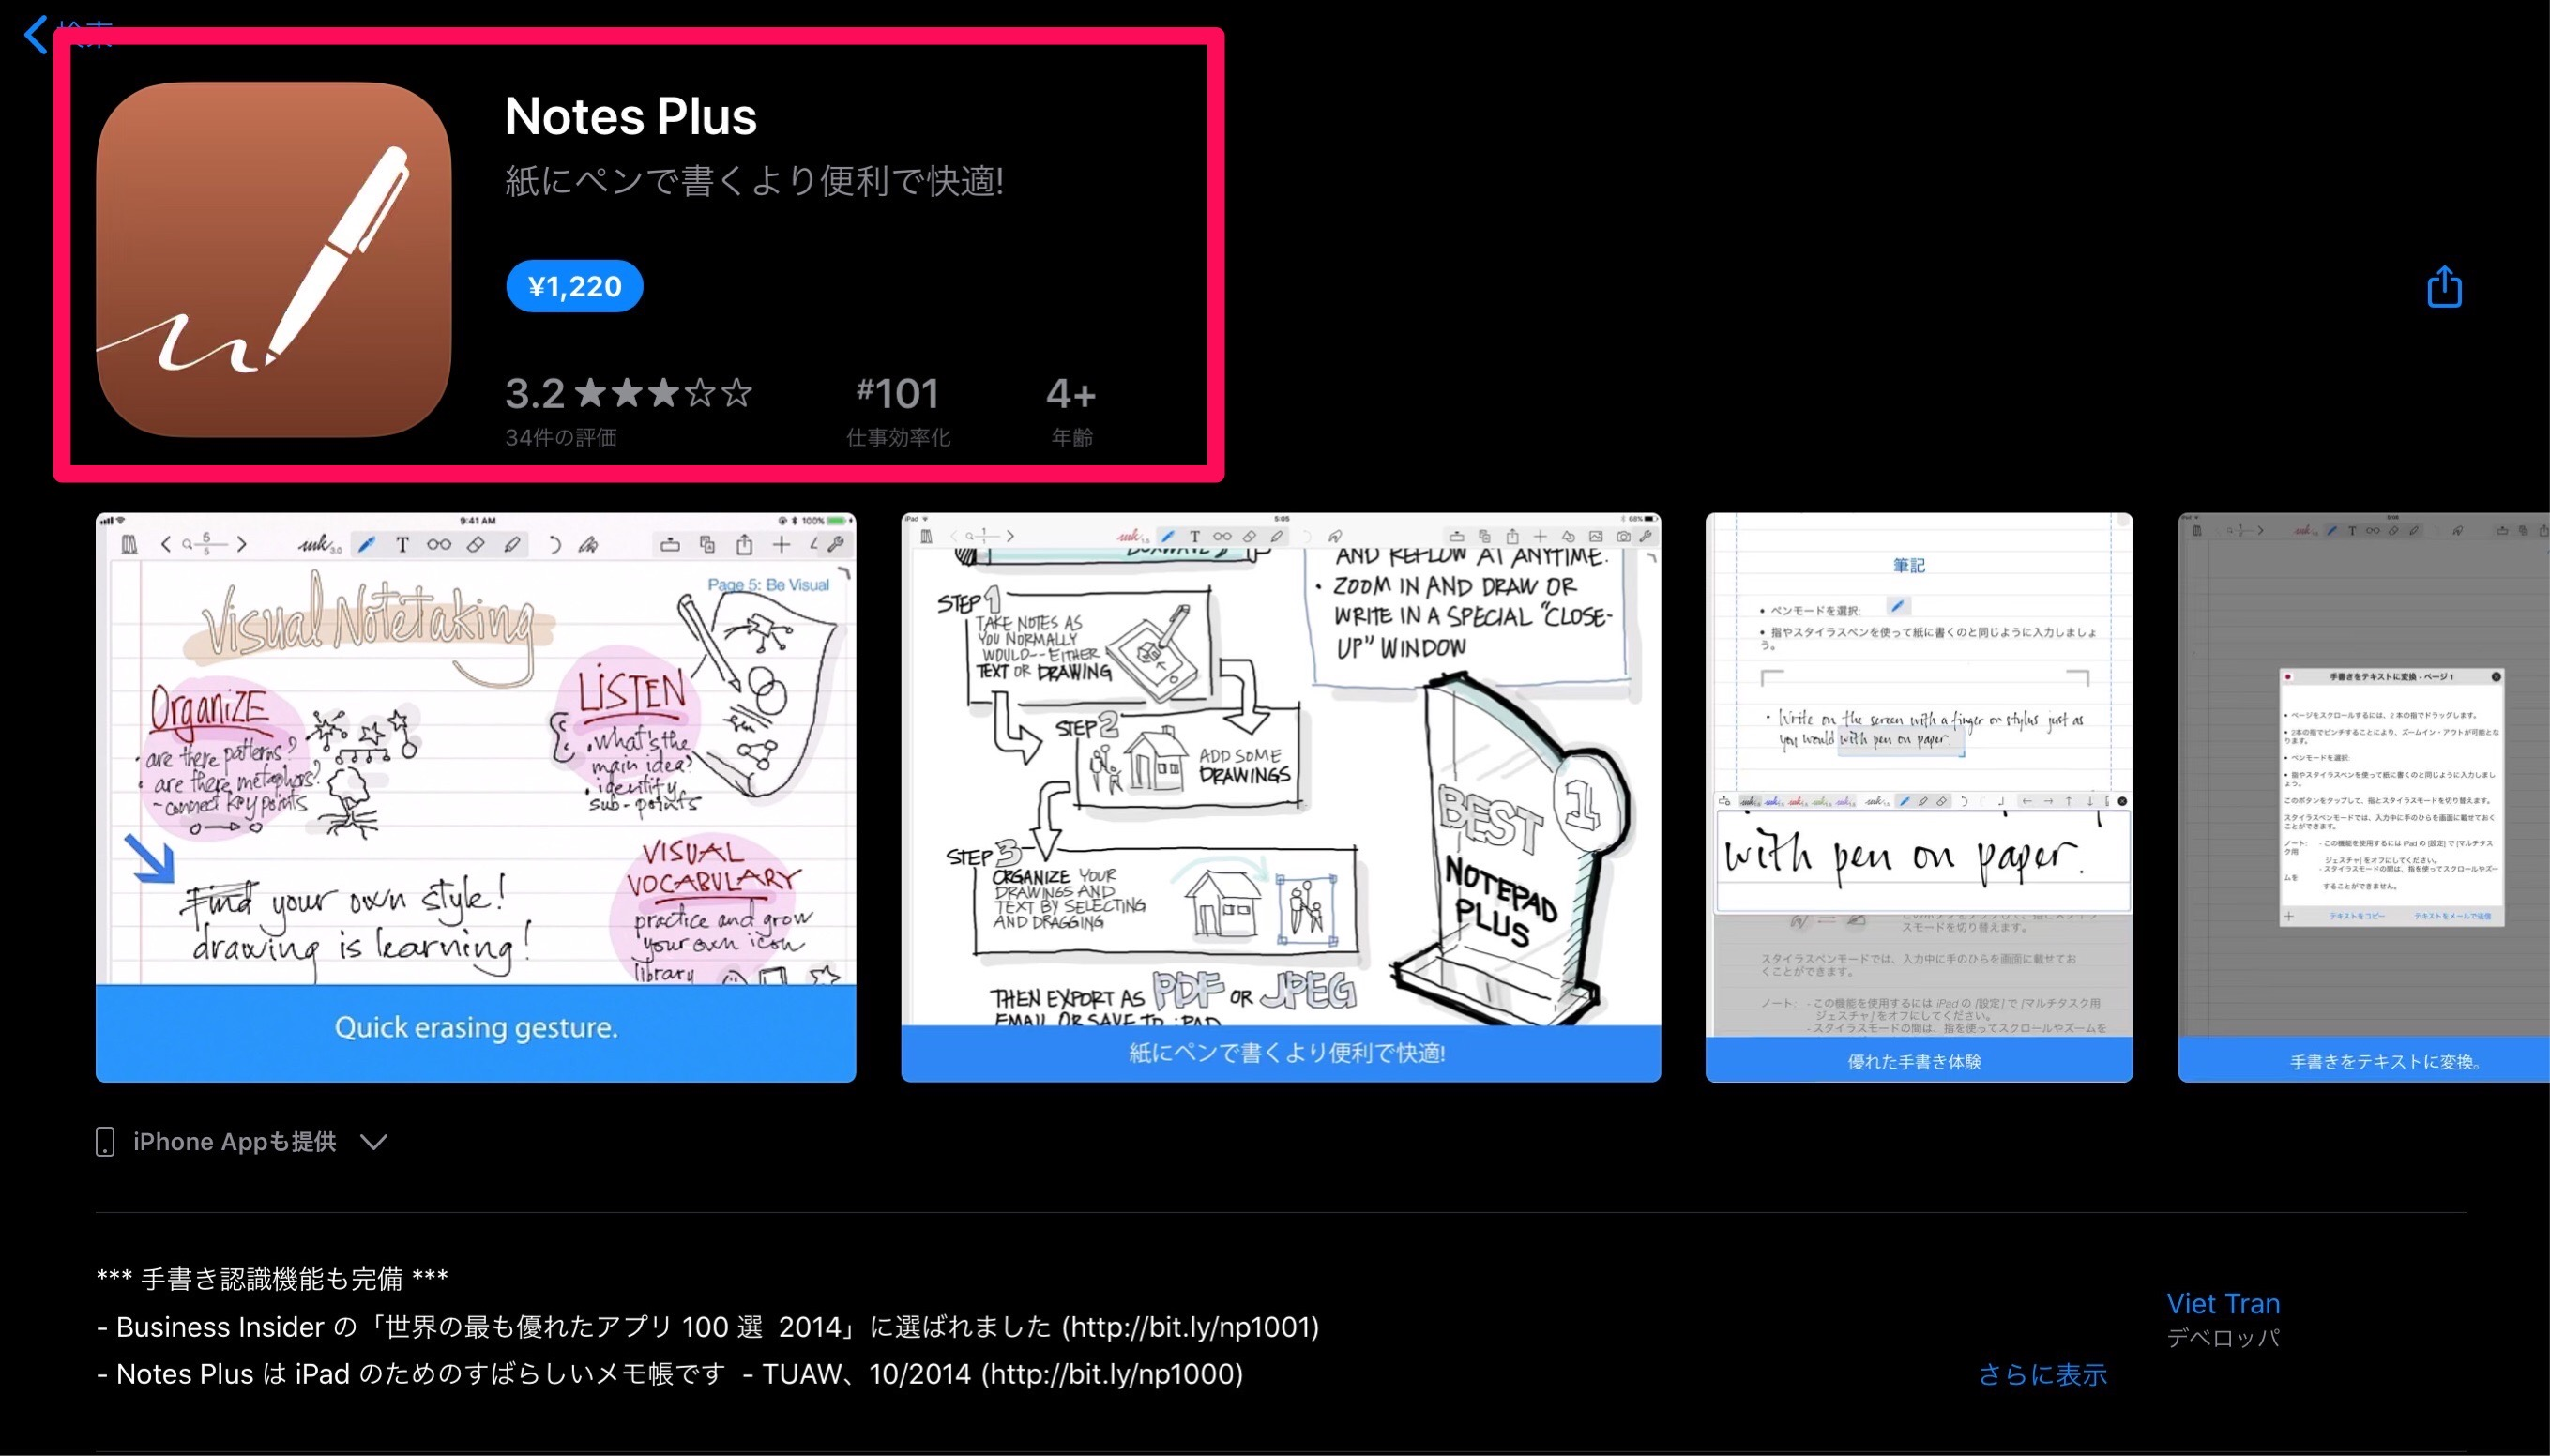 Notes Plus アプリ画面